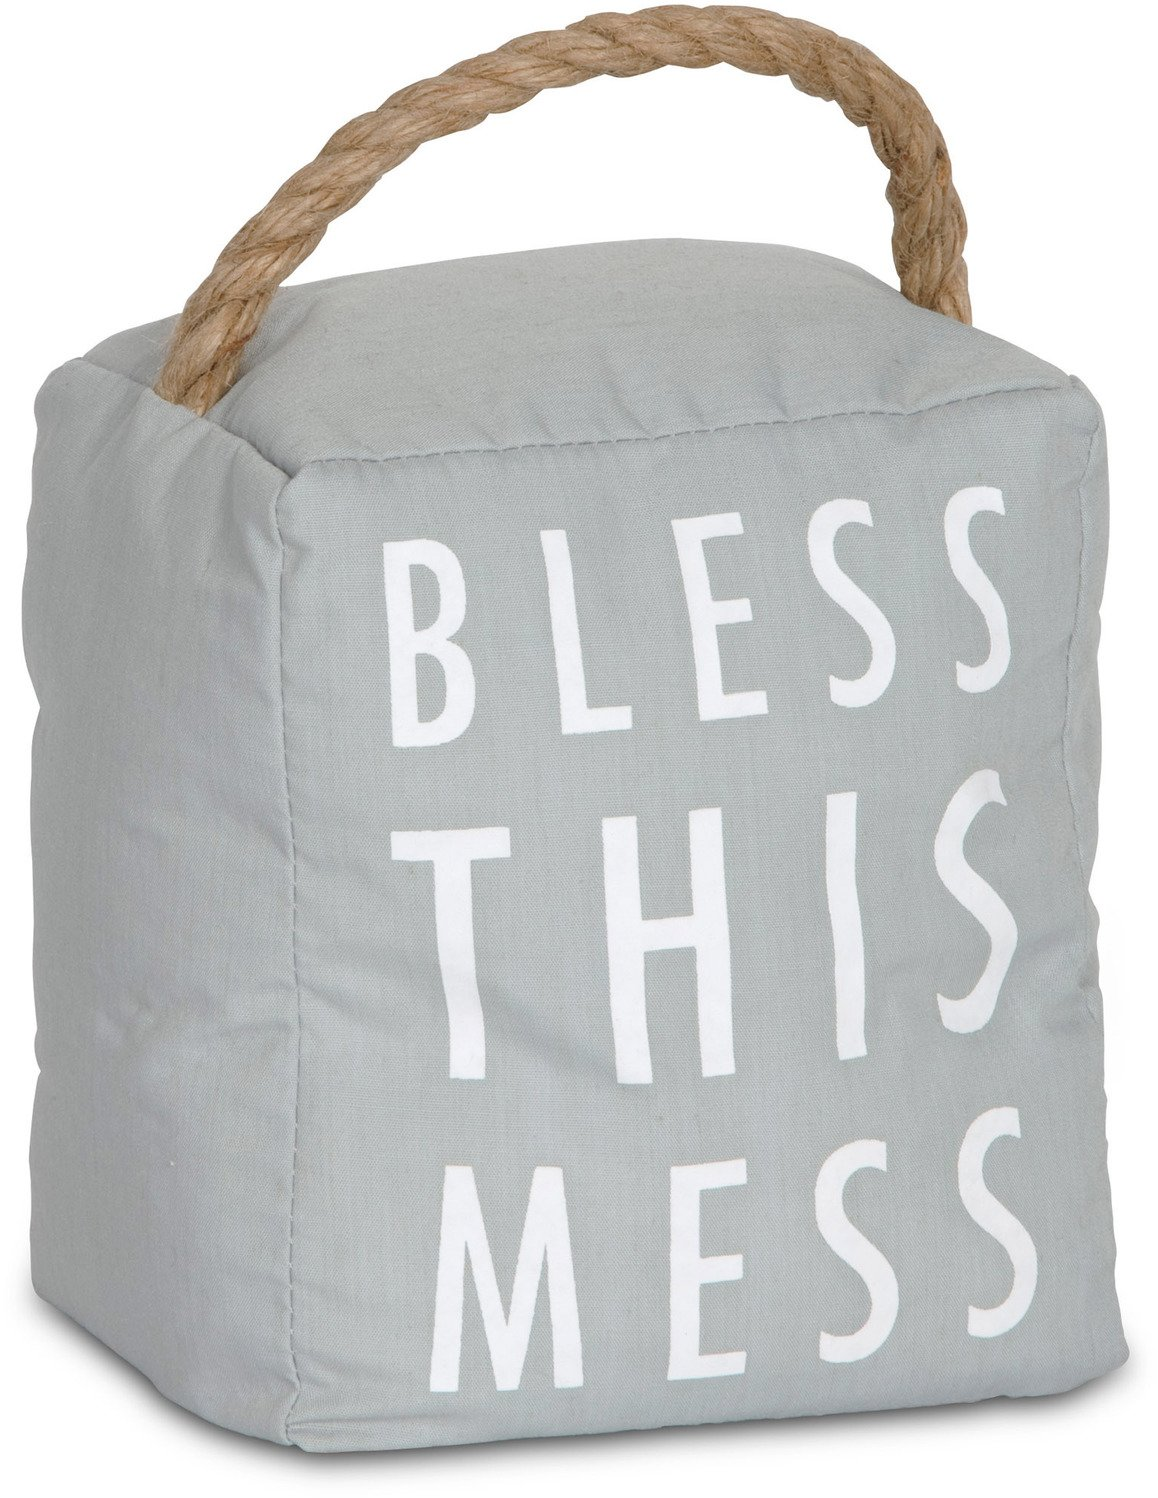 Pavilion Gift Company 72194 Bless This Mess Door Stopper, 5 x 6''